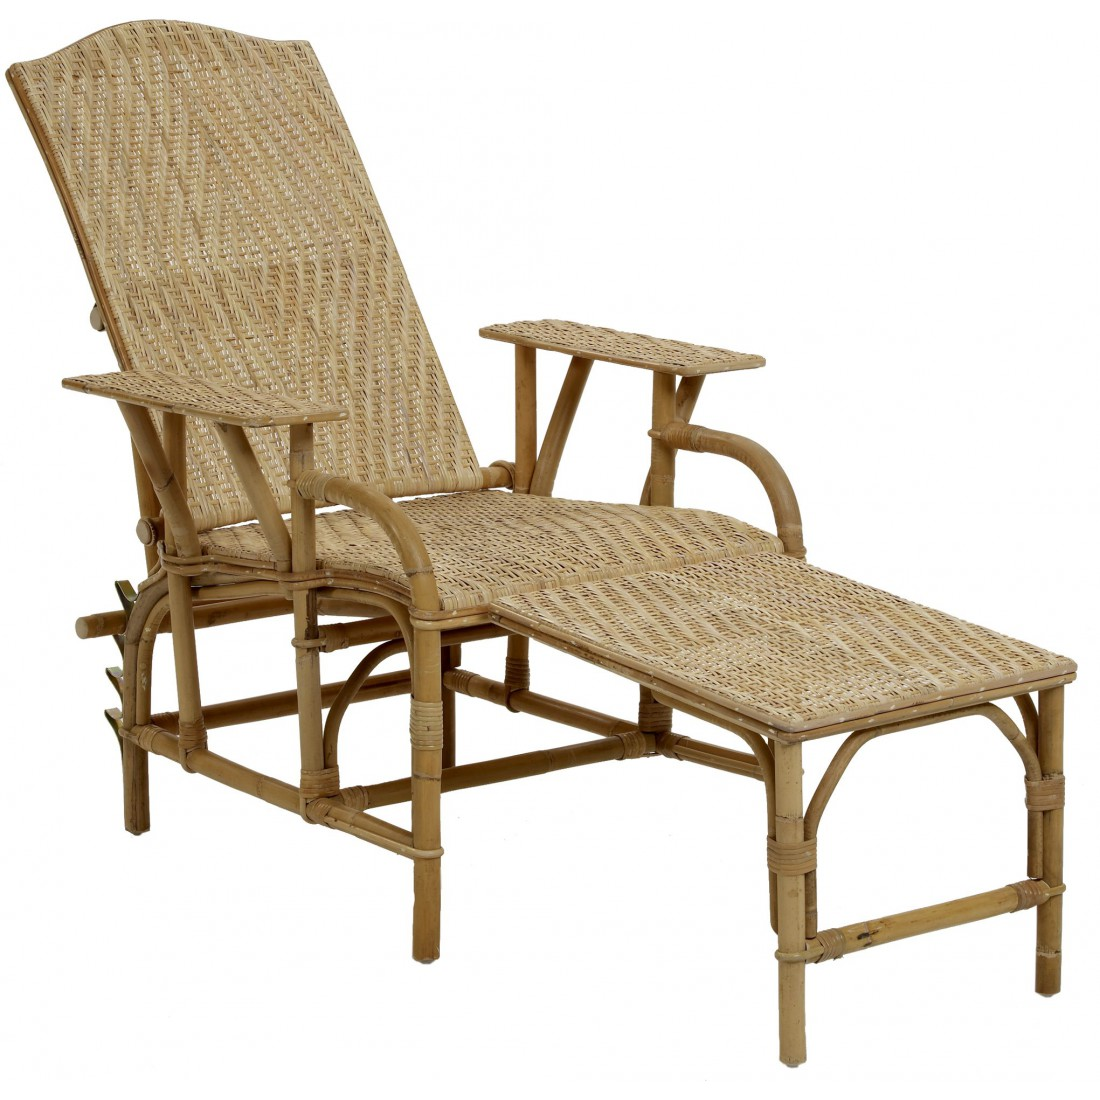 Chaise Longue Rotin Ancienne Chaise Longue En Rotin Naturel Inclinable